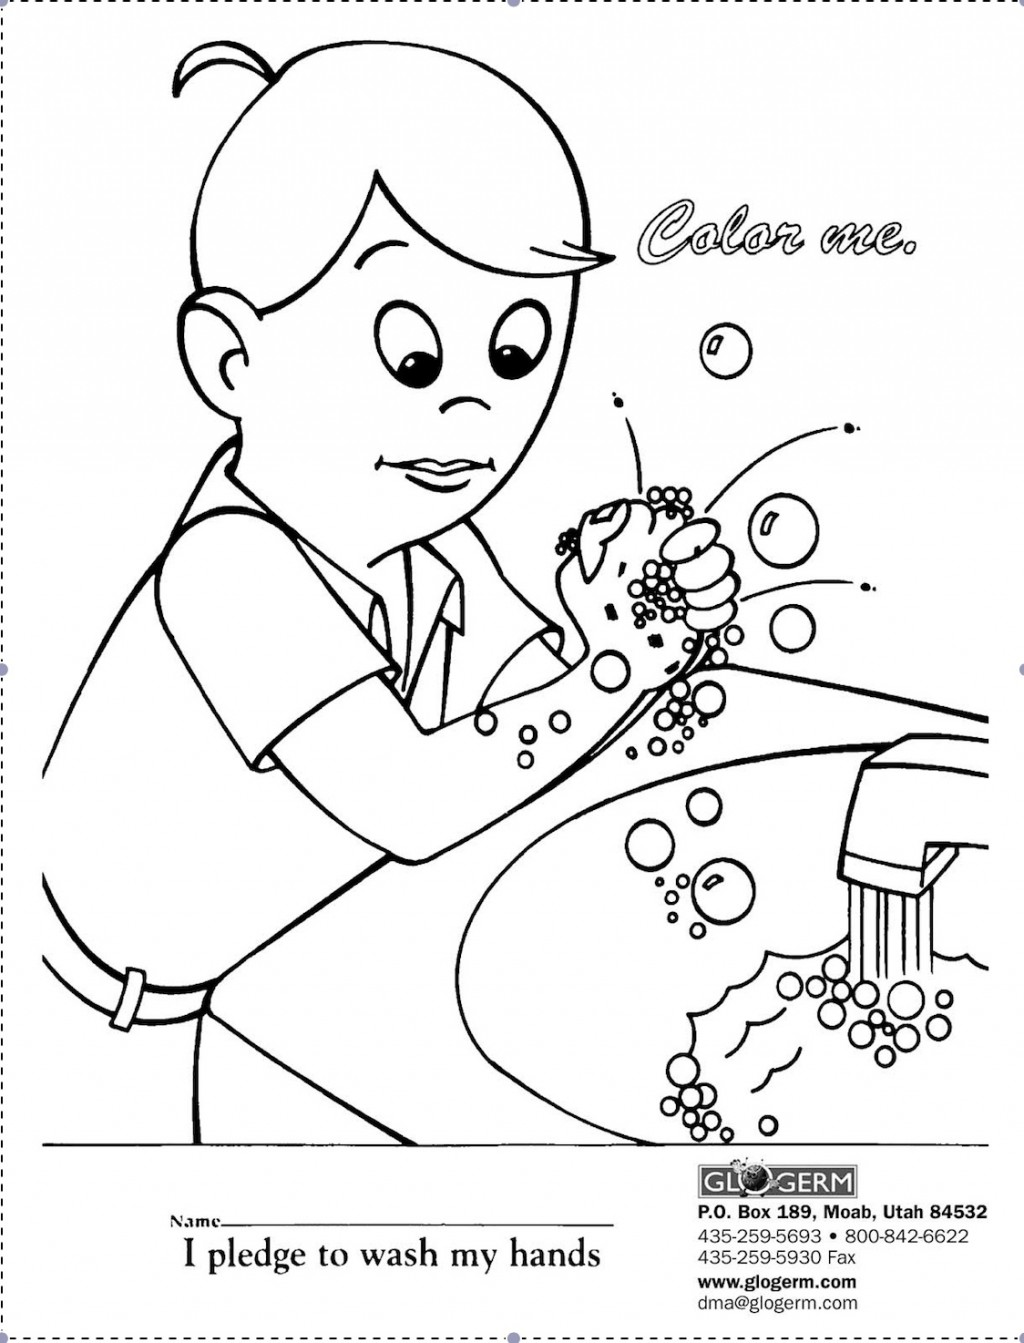 16 Best Images of Germ Worksheets Printable Kindergarten